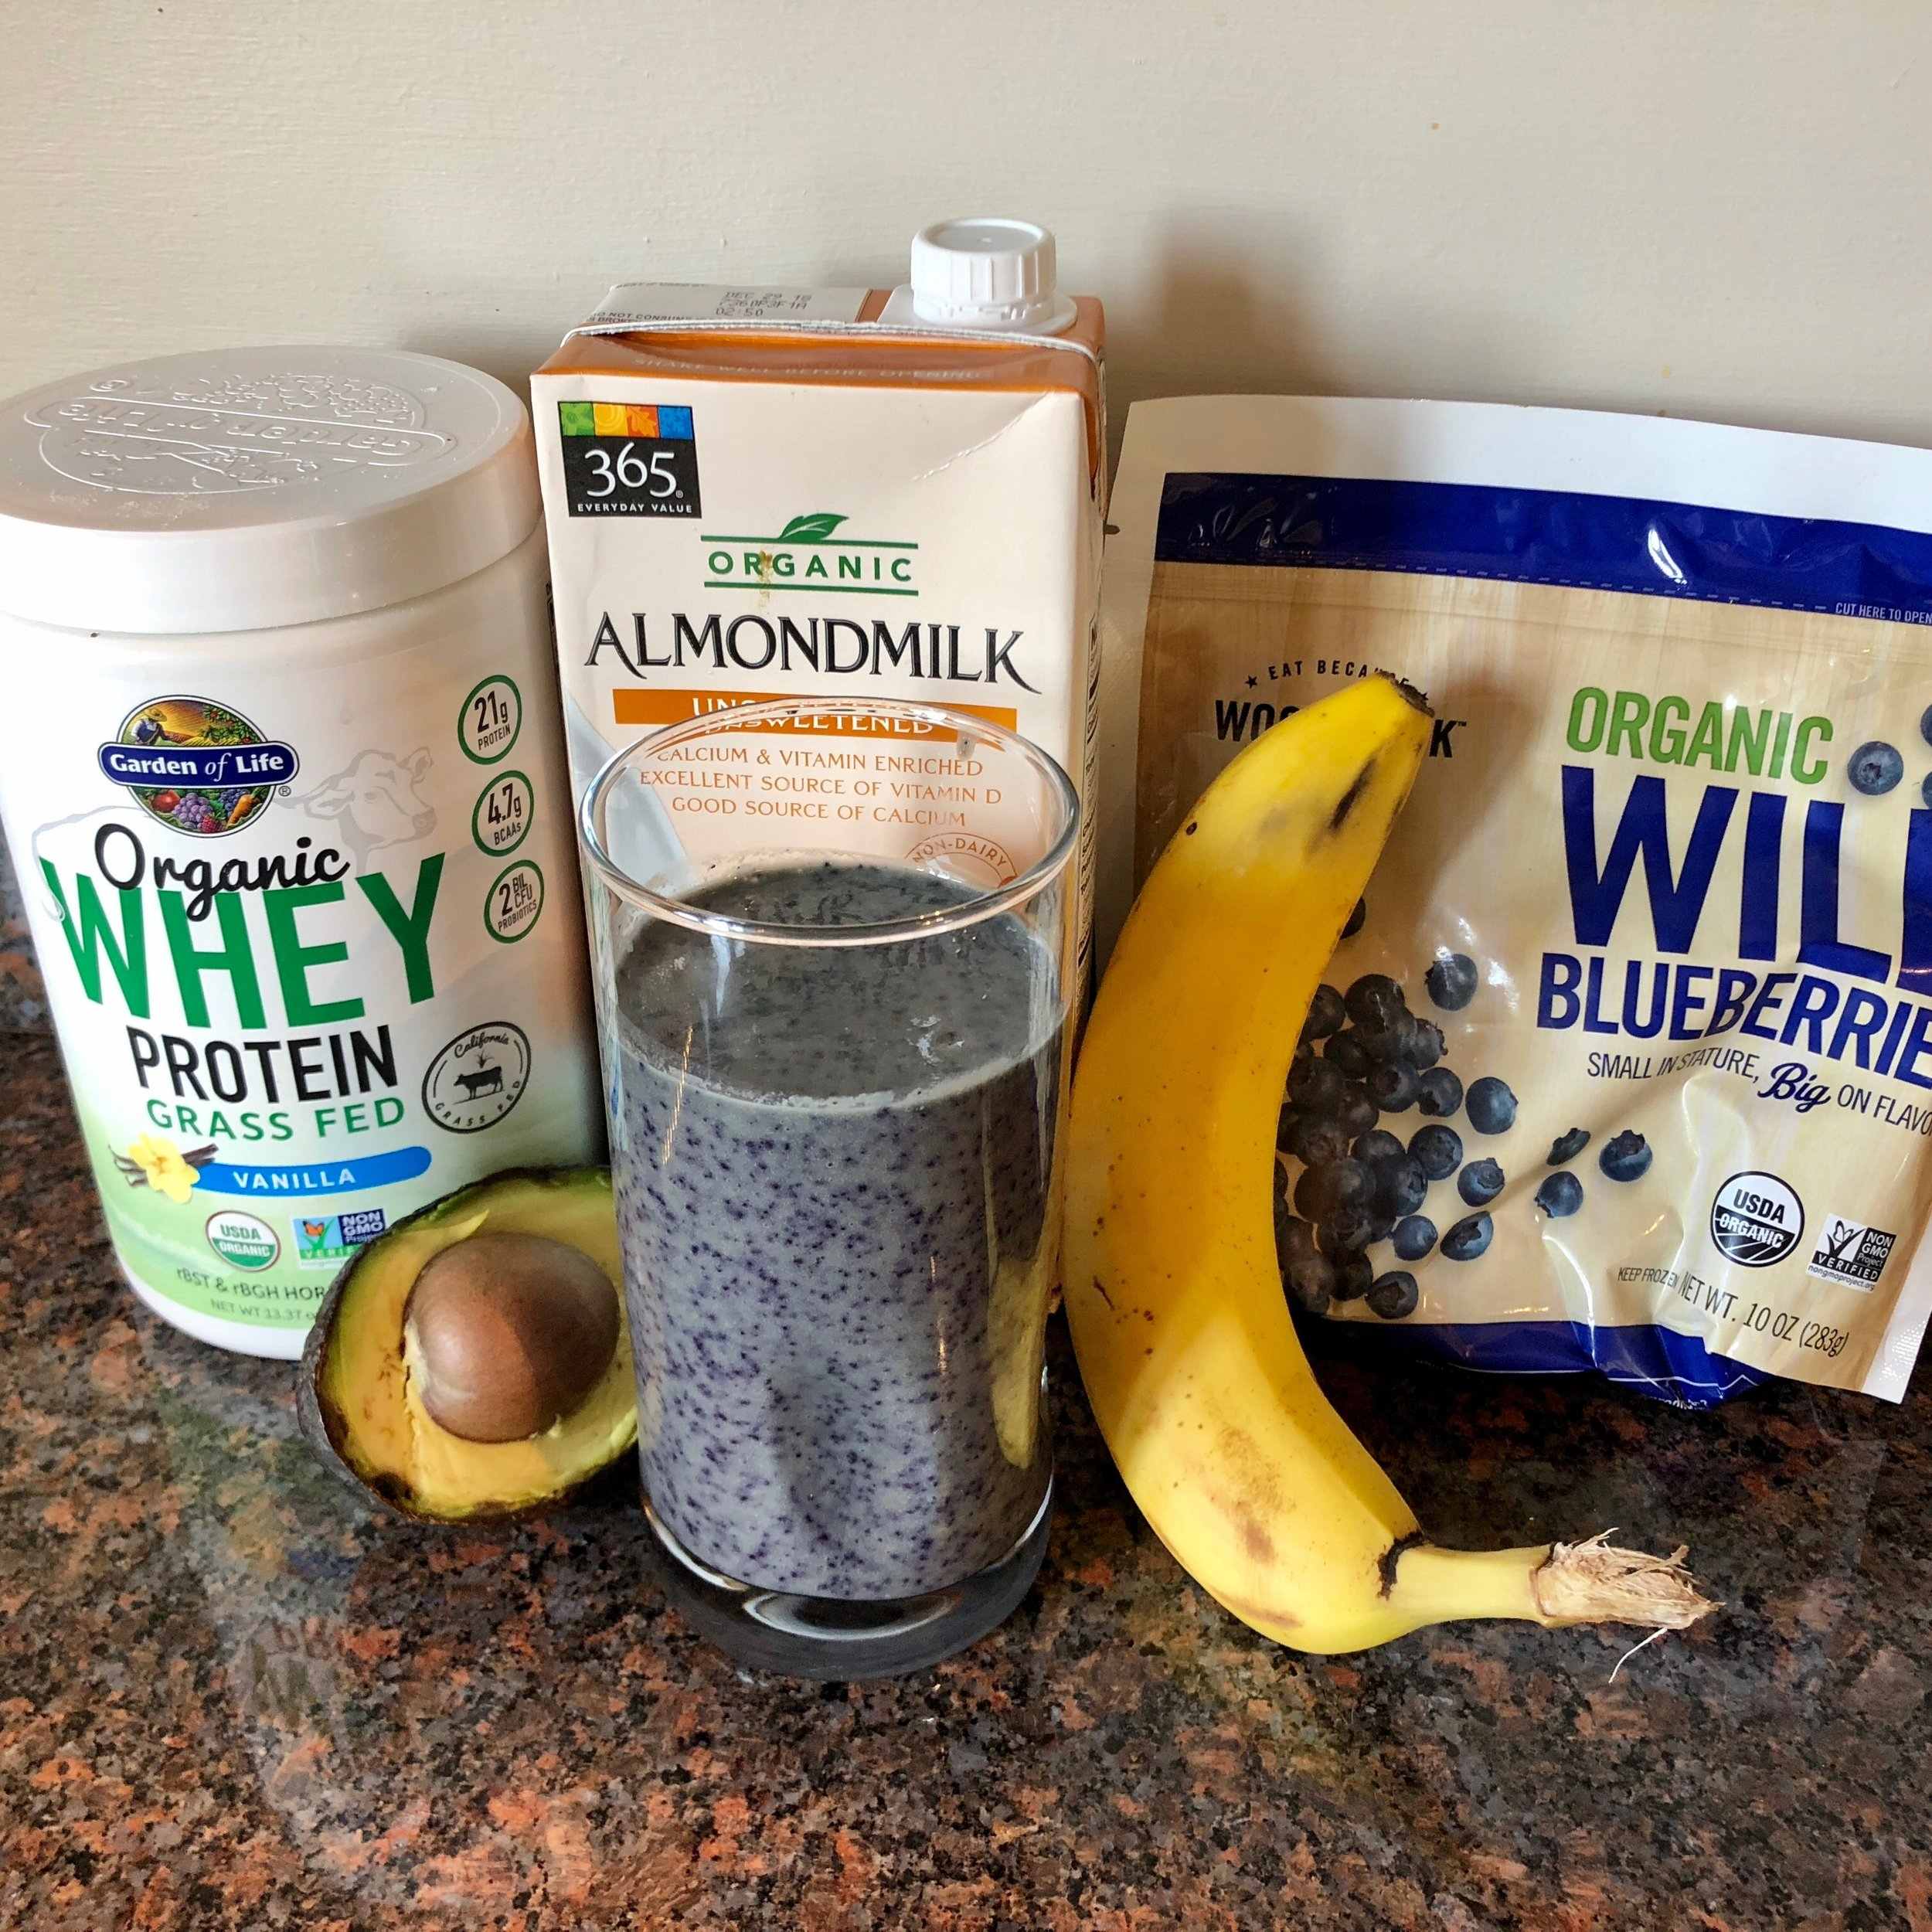 Almond milk, whey protein, avocado, banana, pomegranate (not in the picture) and blueberries.